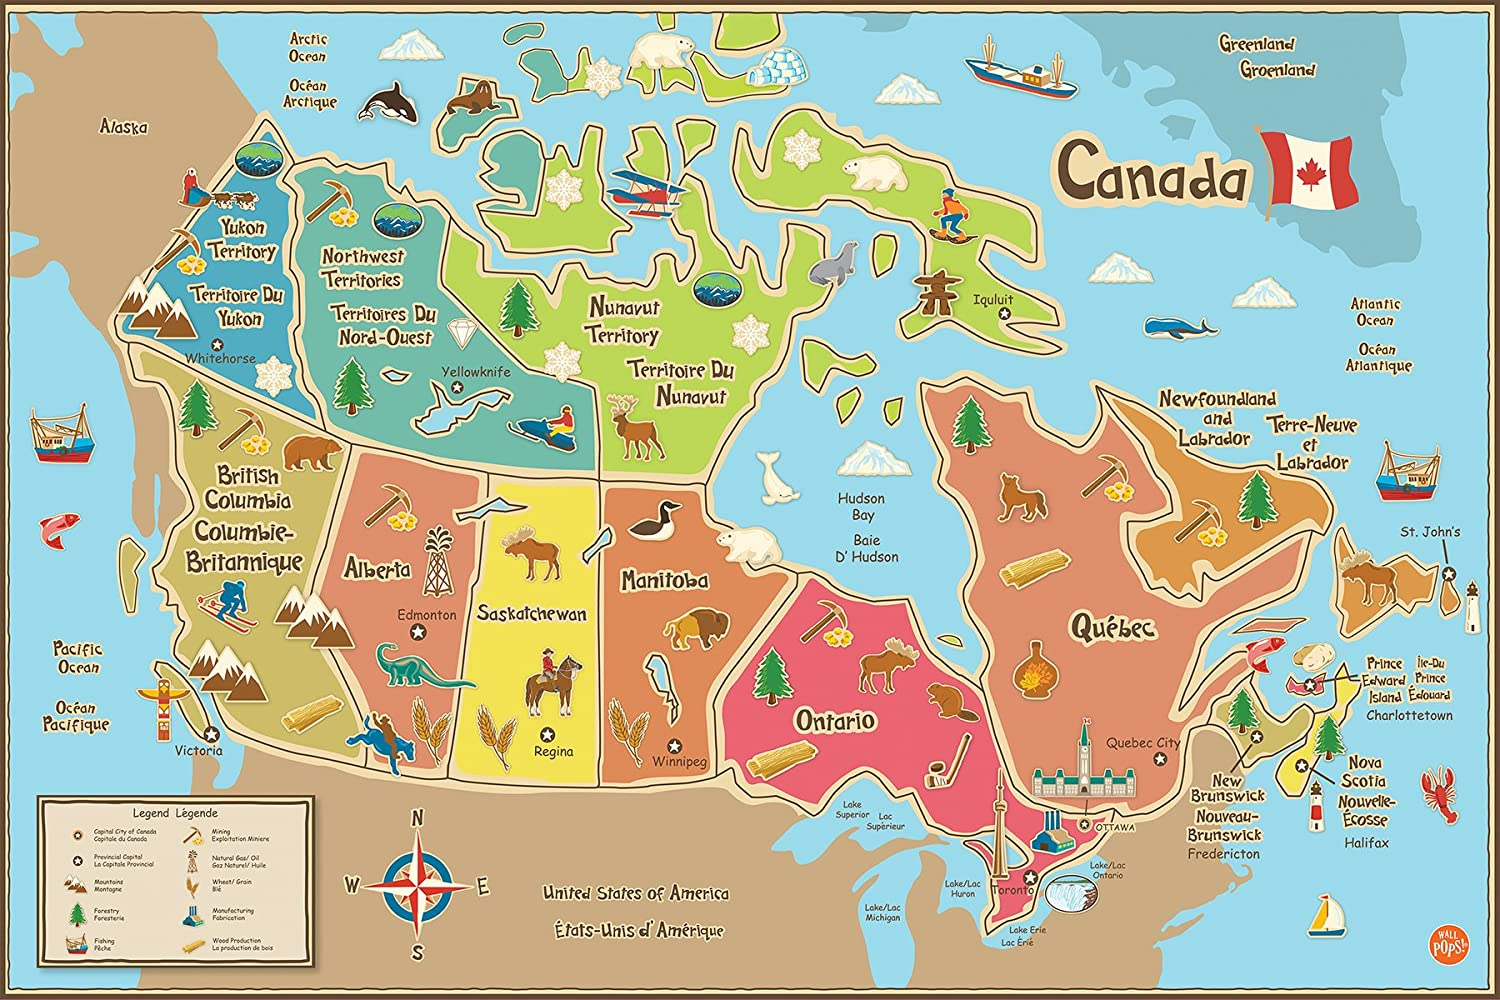 Map Of Canada For Kids Amazon.com: Wall Pops WPE1391 Kids Canada Dry Erase Map Decal